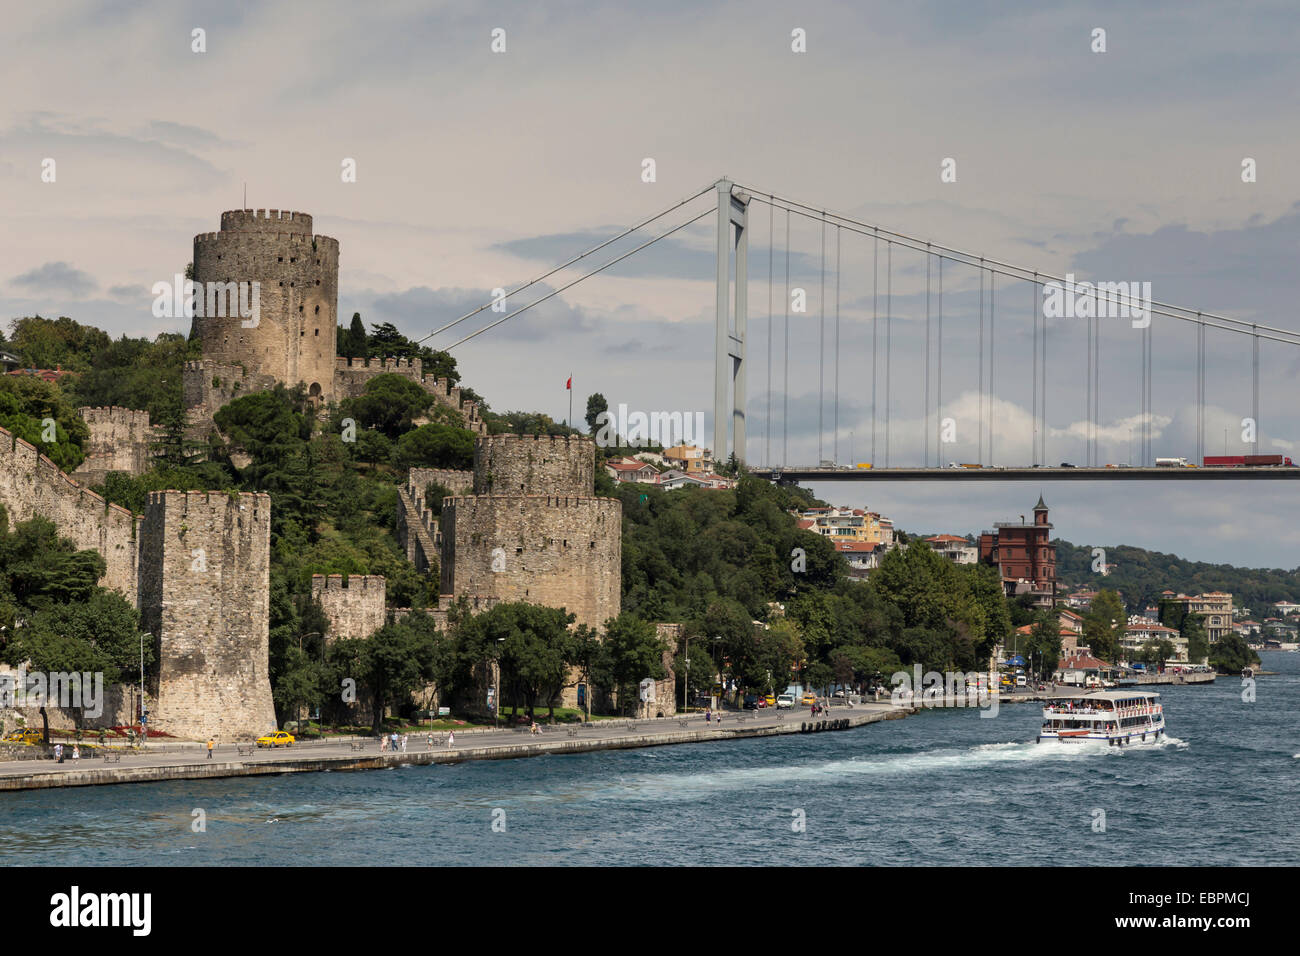 Rumeli Hisari (Fortress of Europe) and Fatih Sultan Mehmet Suspension Bridge, Hisarustu, Bosphorus Strait, Istanbul, - Stock Image